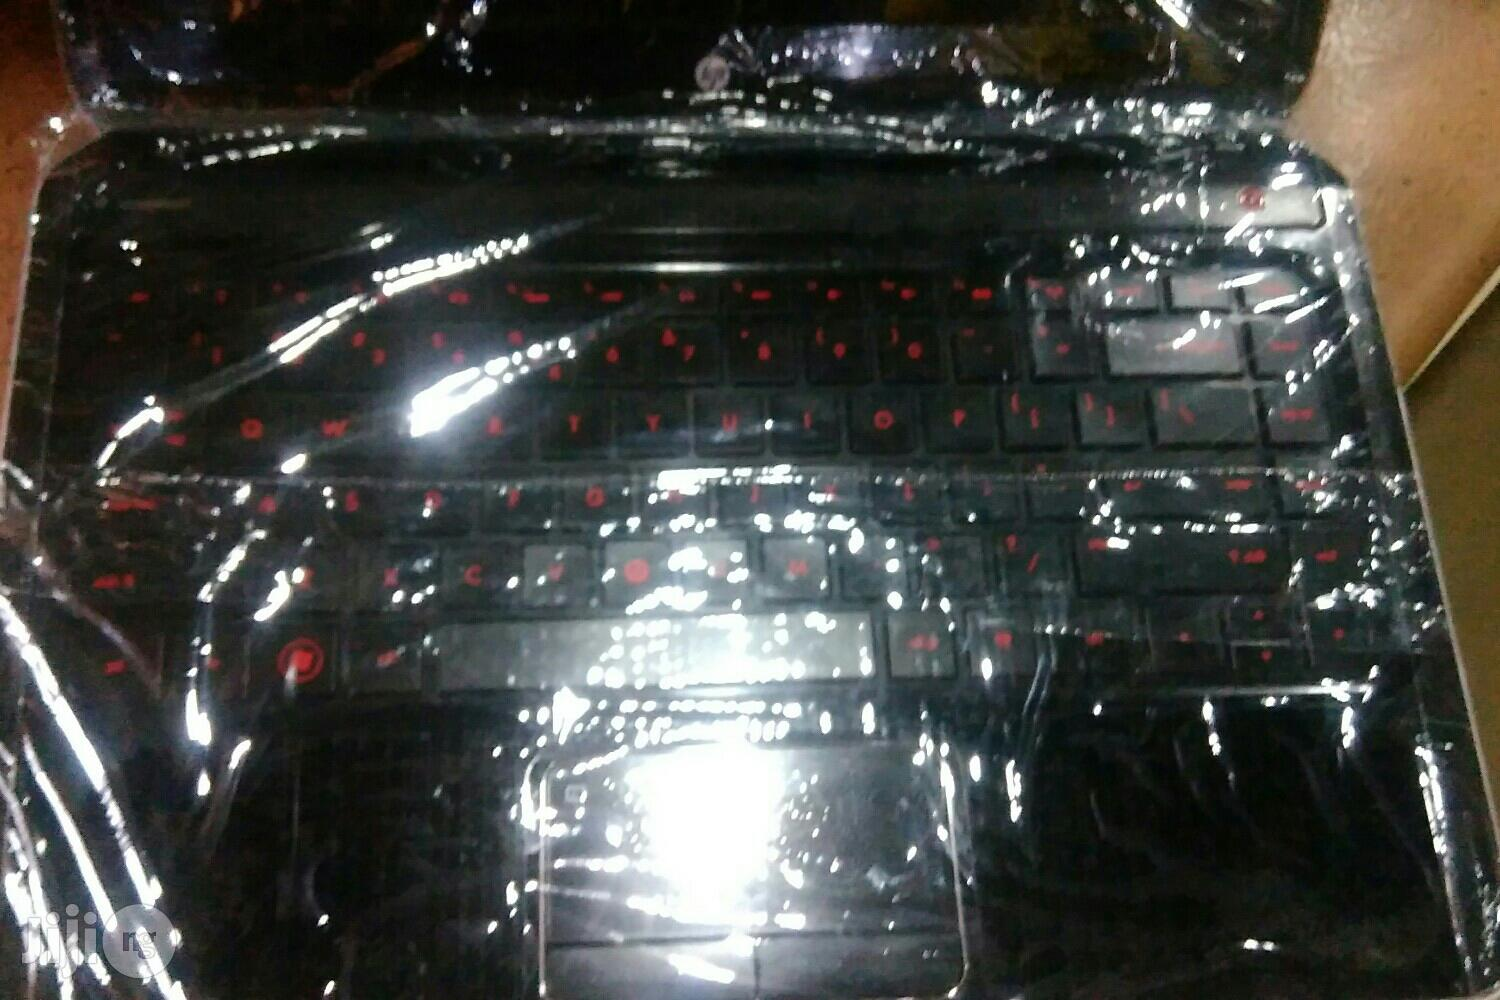 2gb Nvidia Graphics 1 Tb Hdd Core I7 8gb Ram | Laptops & Computers for sale in Wuse, Abuja (FCT) State, Nigeria